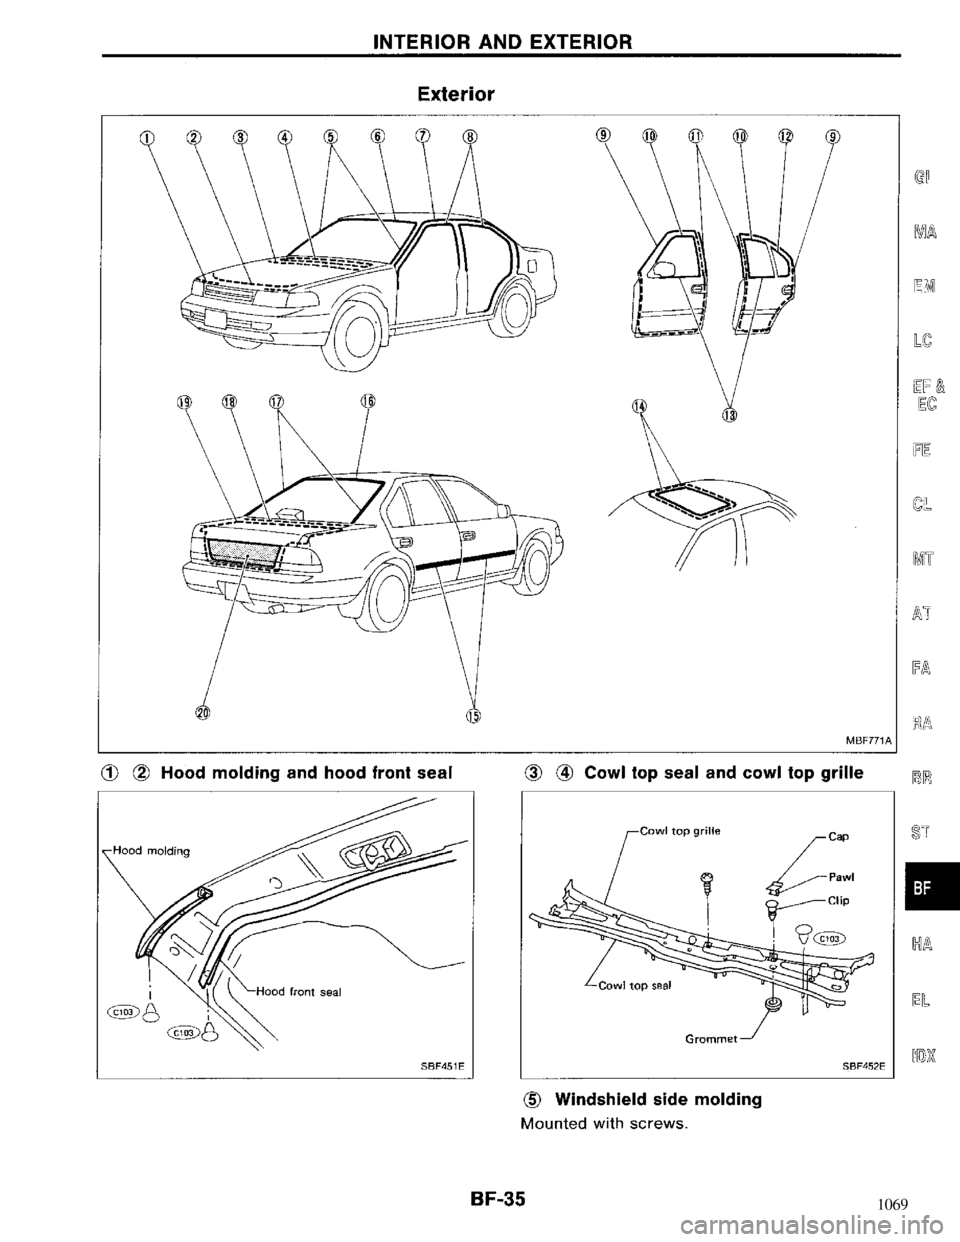 NISSAN MAXIMA 1994 A32 / 4.G Body Workshop Manual, Page 35